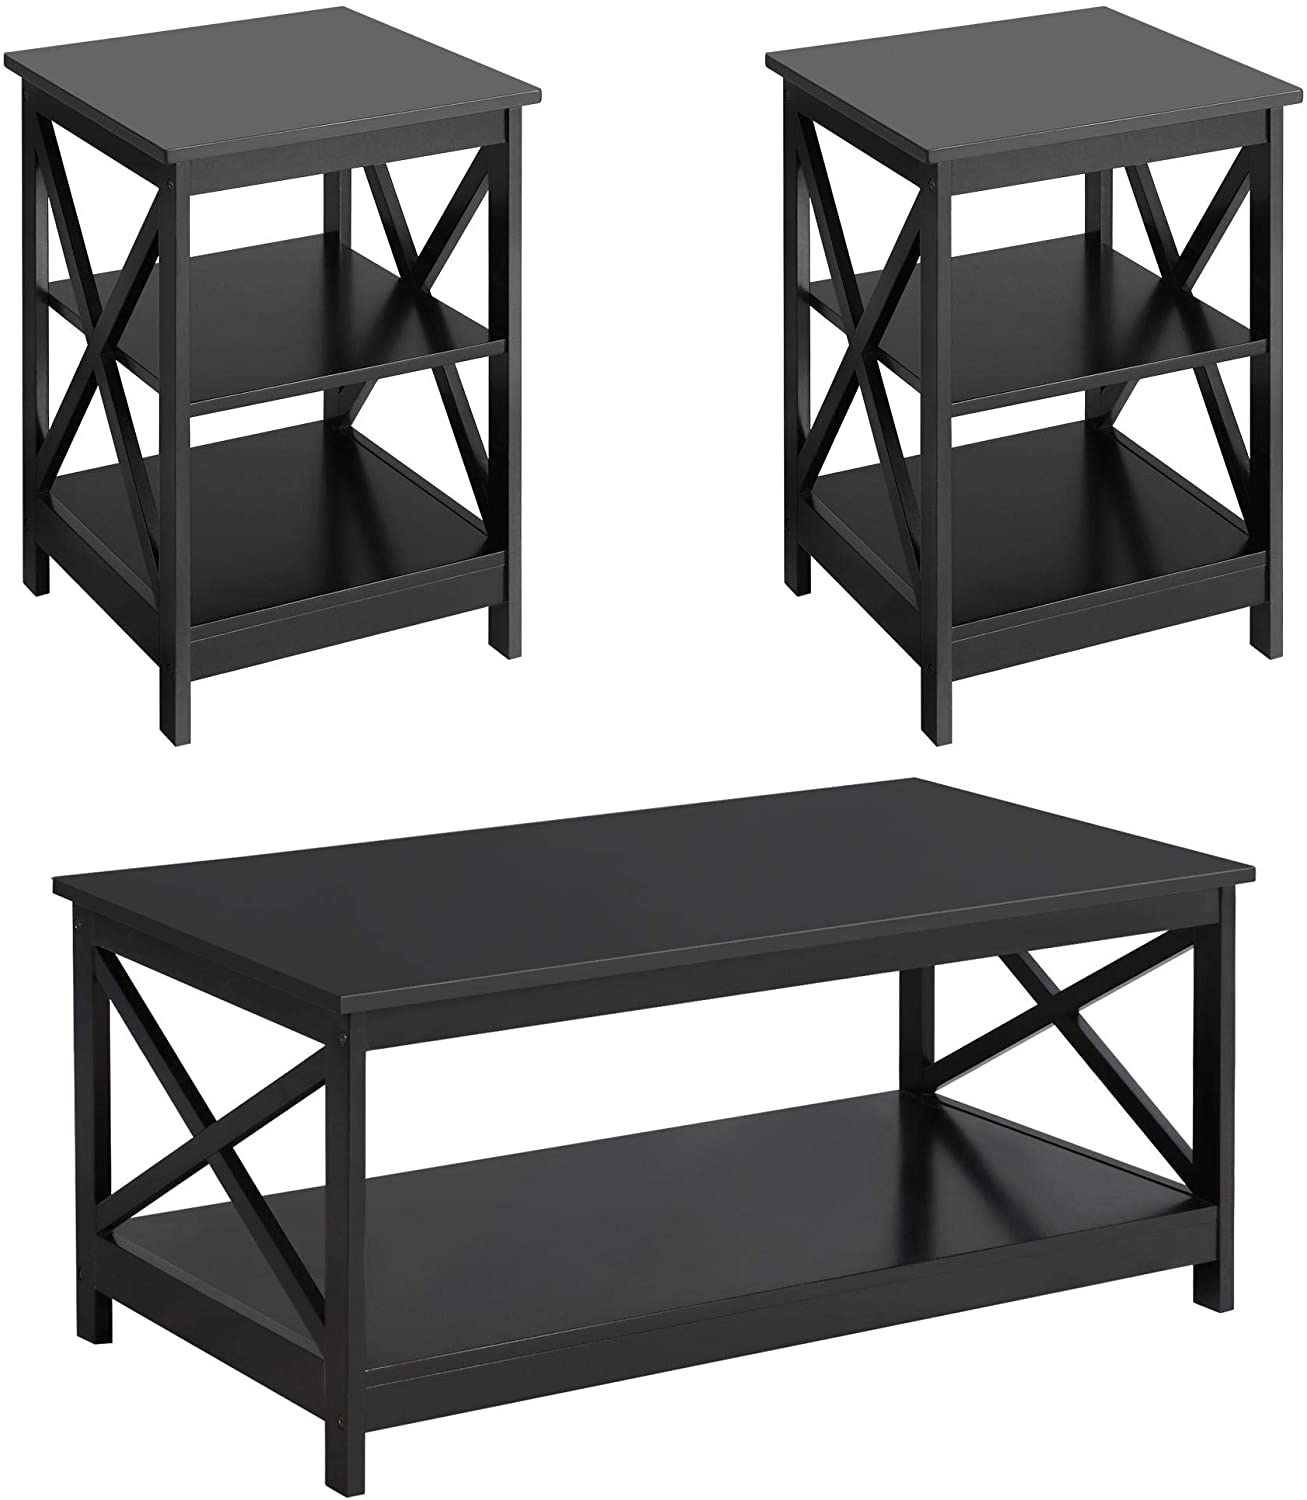 Yaheetech Wood Living Room 3-Piece - Table Ranking TOP1 Sets X-Desig 2021new shipping free shipping Includes